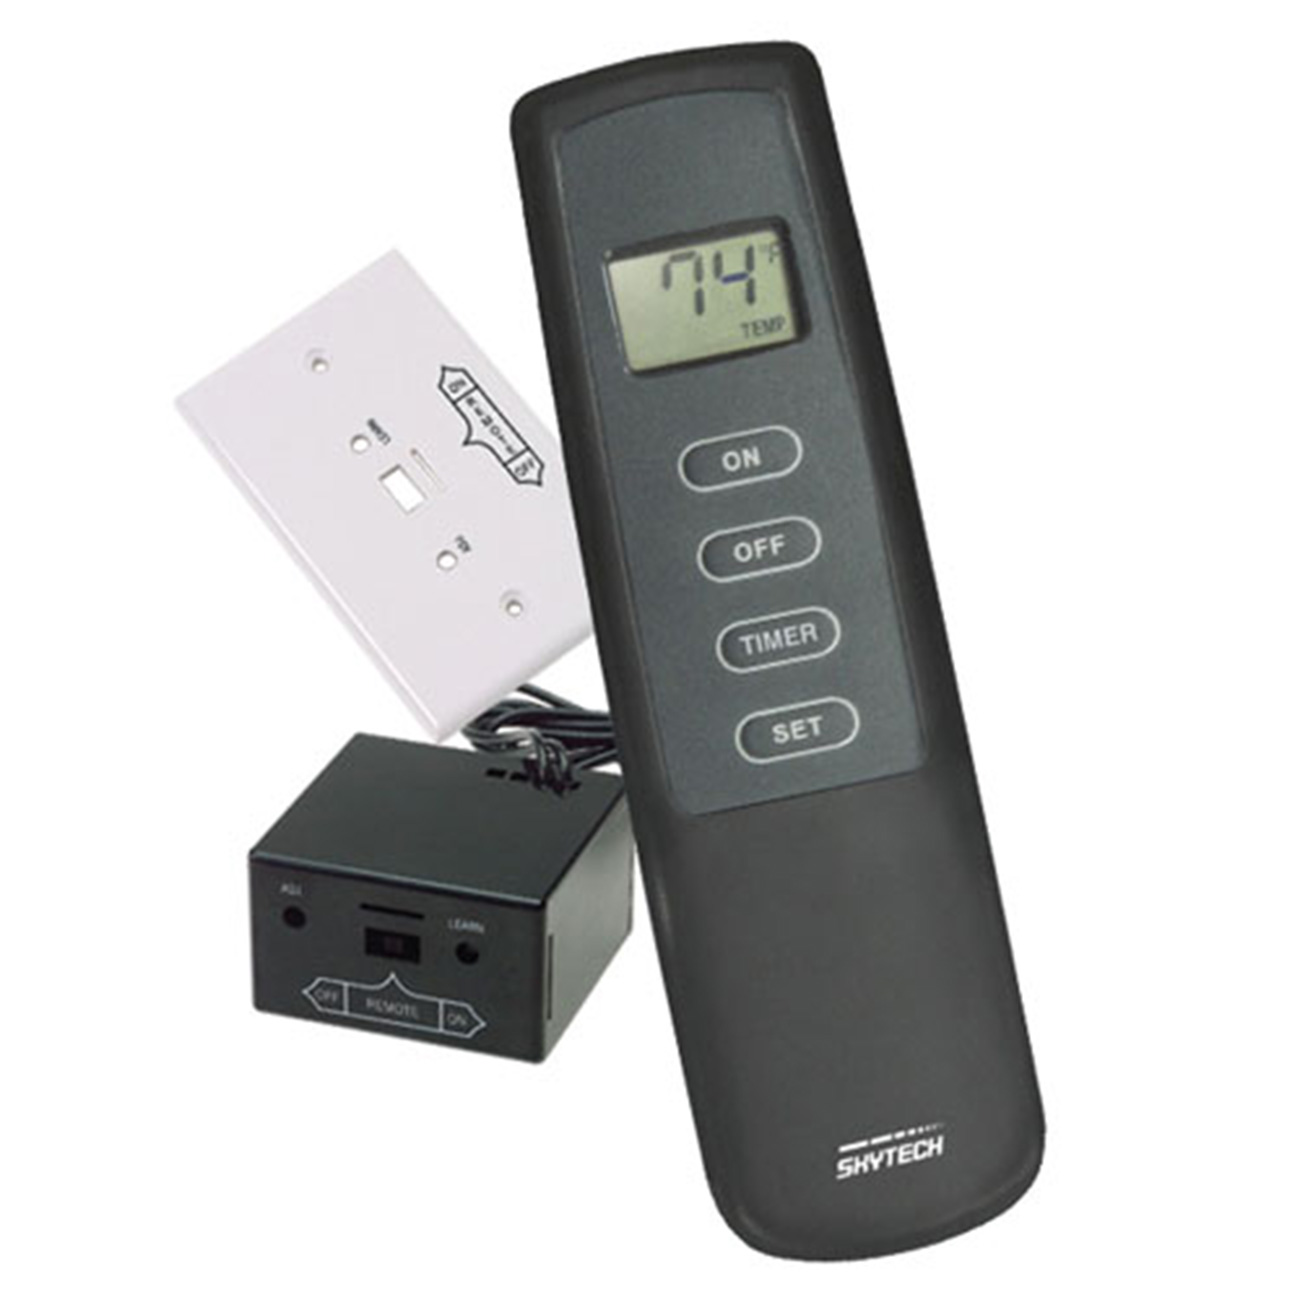 Skytech Hand Held Remote With Thermostatic Control And Lcd Display Wire Harness Plus Wiring Model 1001th A Procom Heating